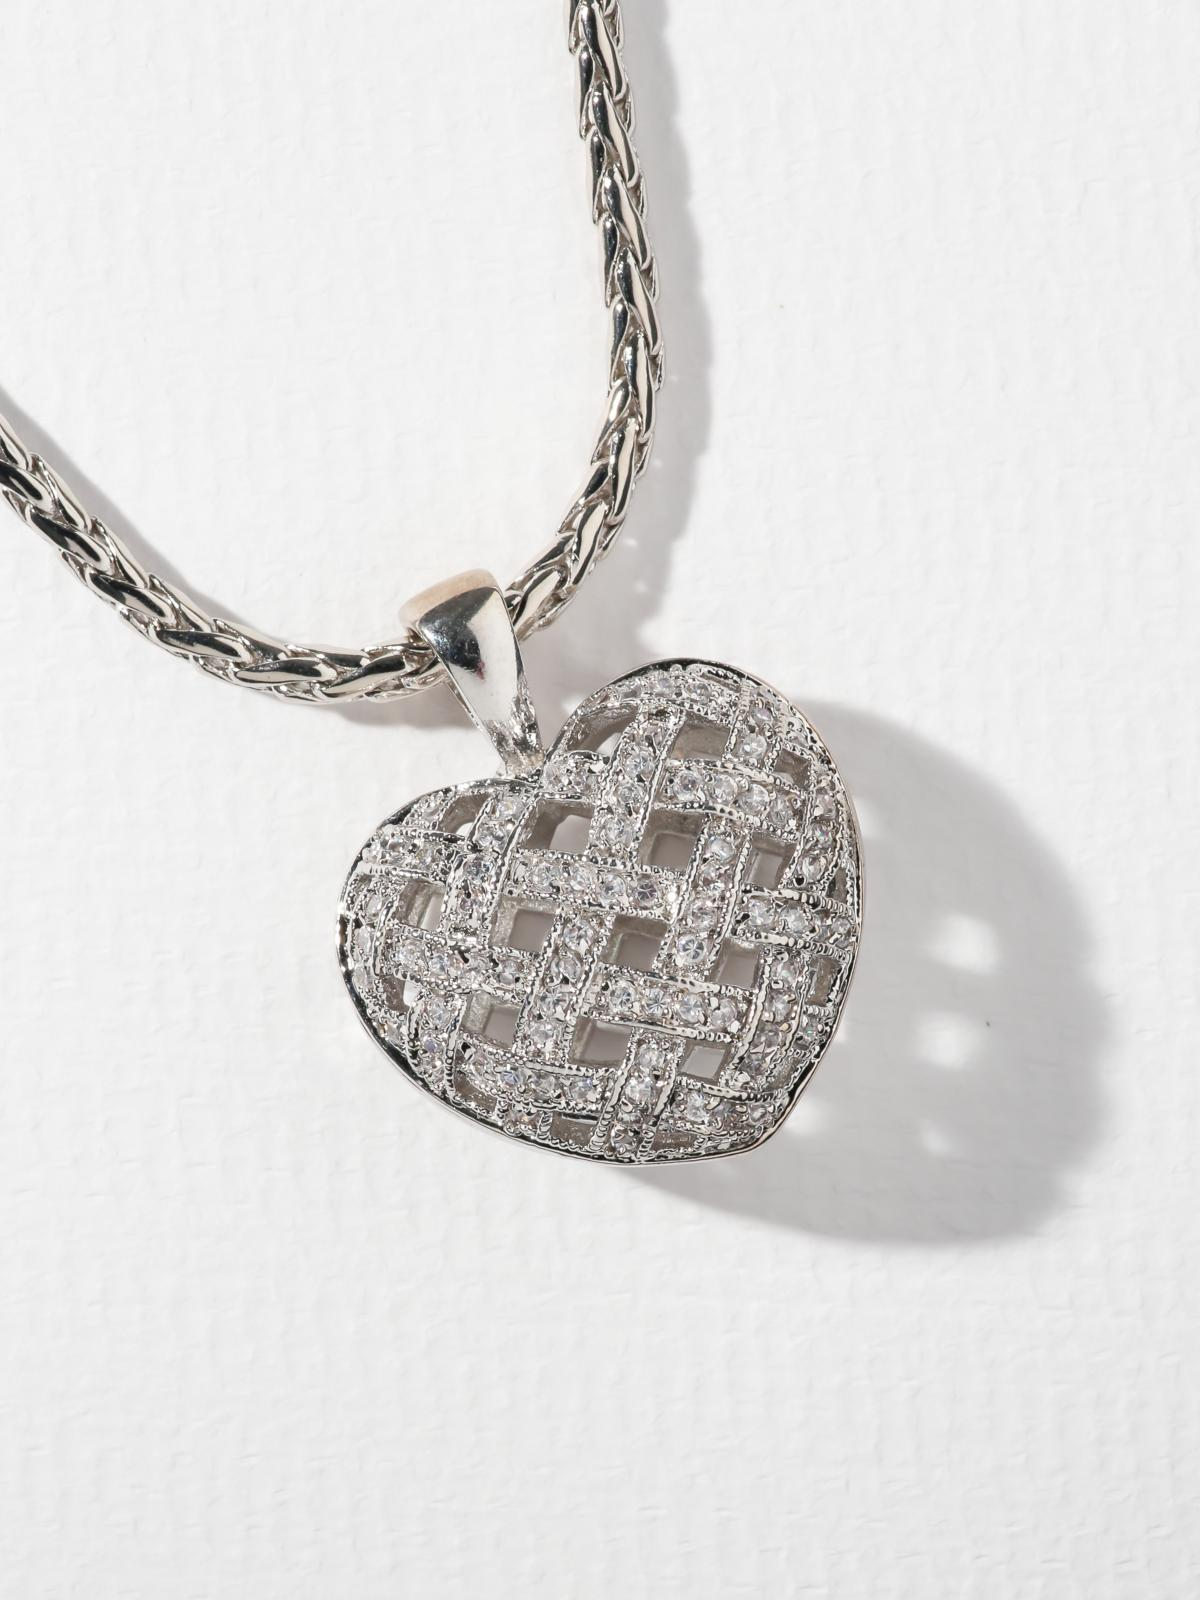 The Lattice Heart Necklace